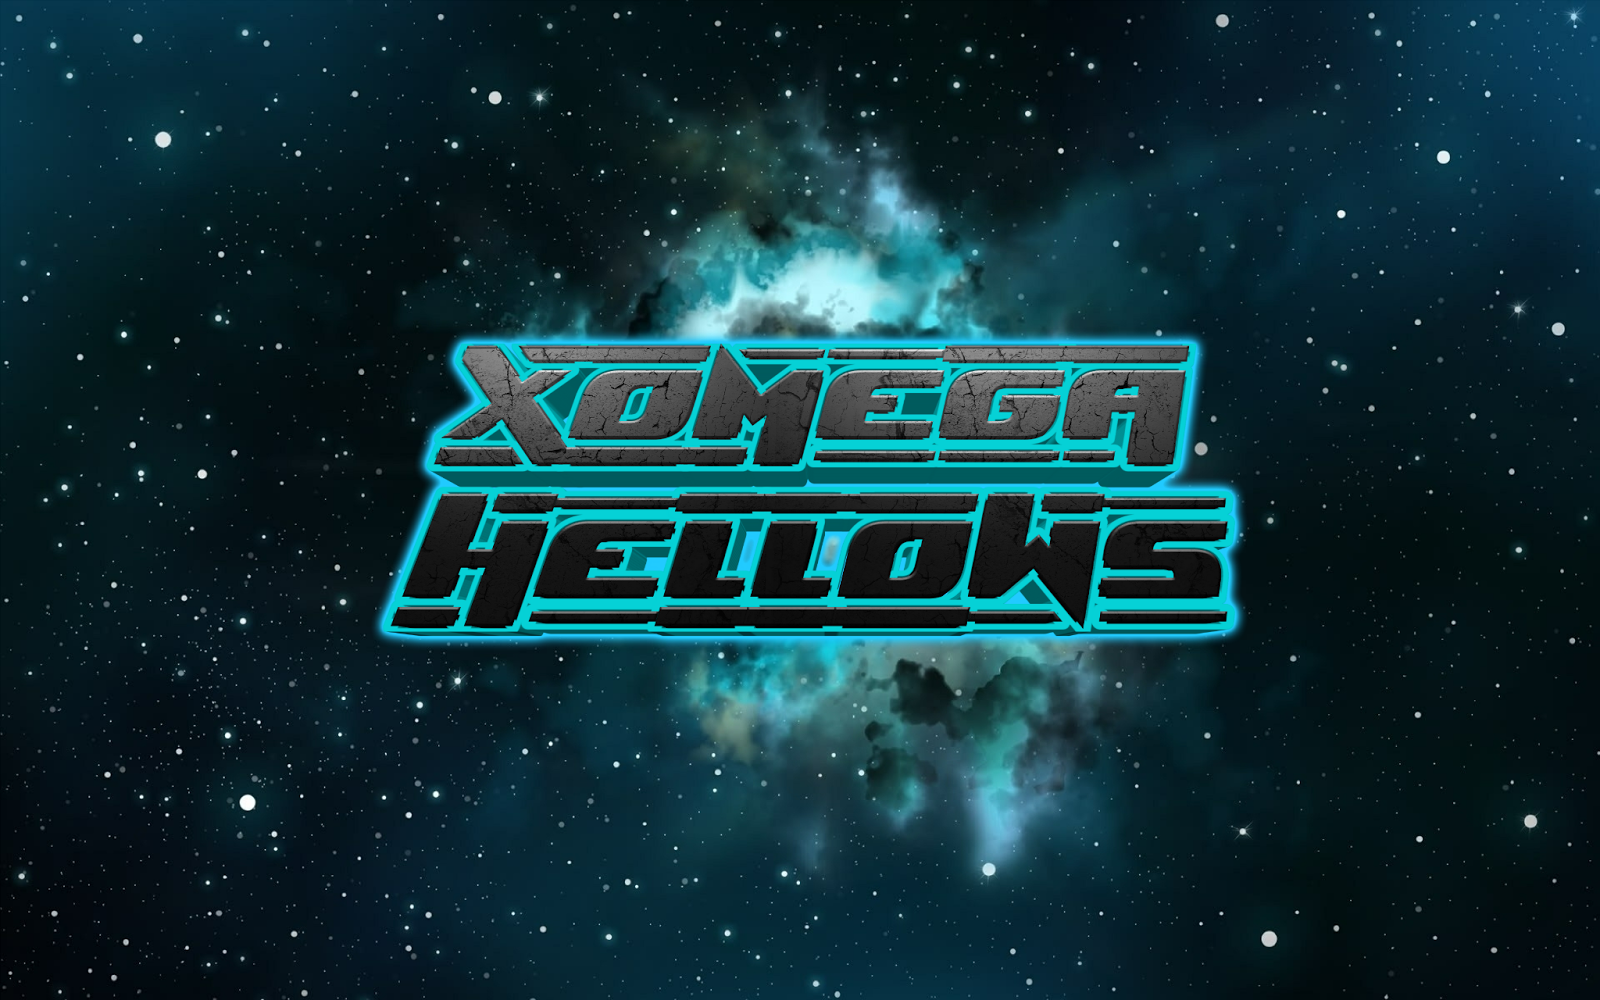 XOMEGA HELLOWS